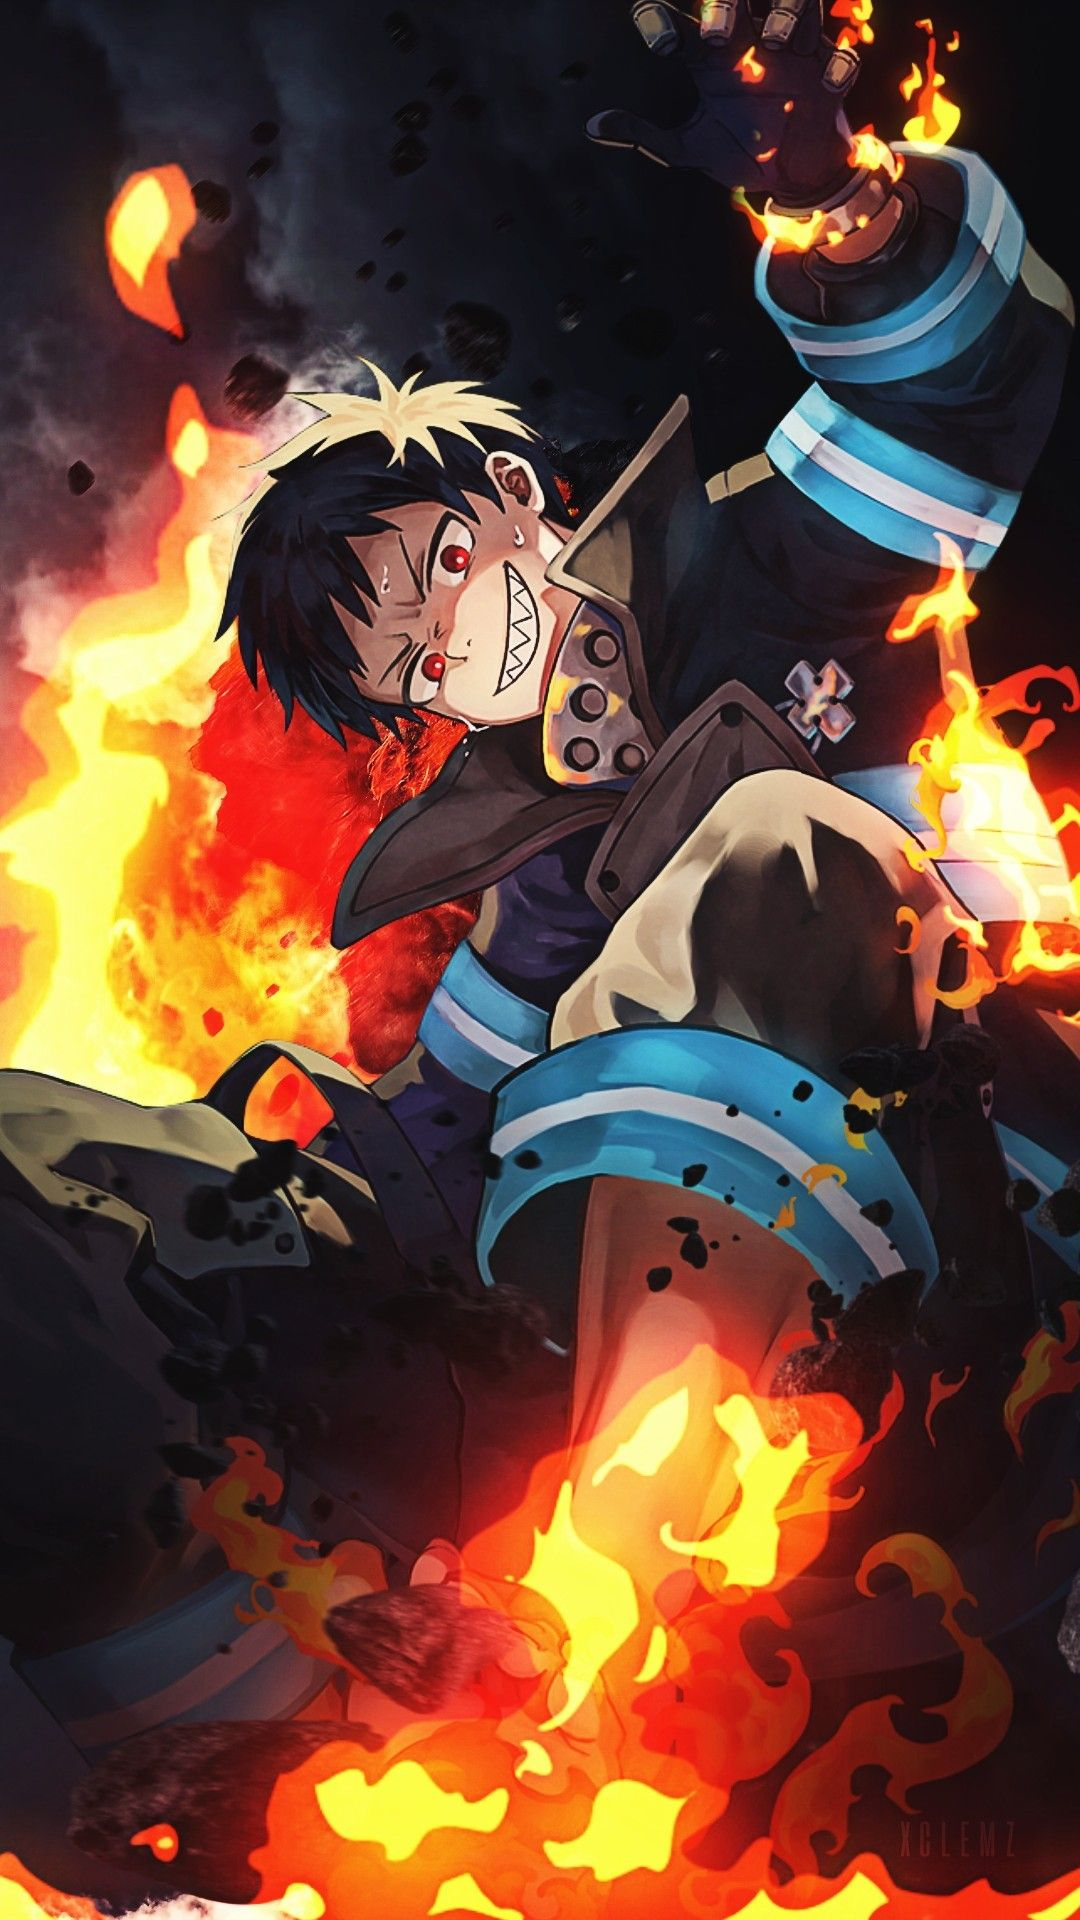 Fire Force Wallpaper Android Kolpaper Awesome Free Hd Wallpapers Do you want fire force wallpaper? fire force wallpaper android kolpaper